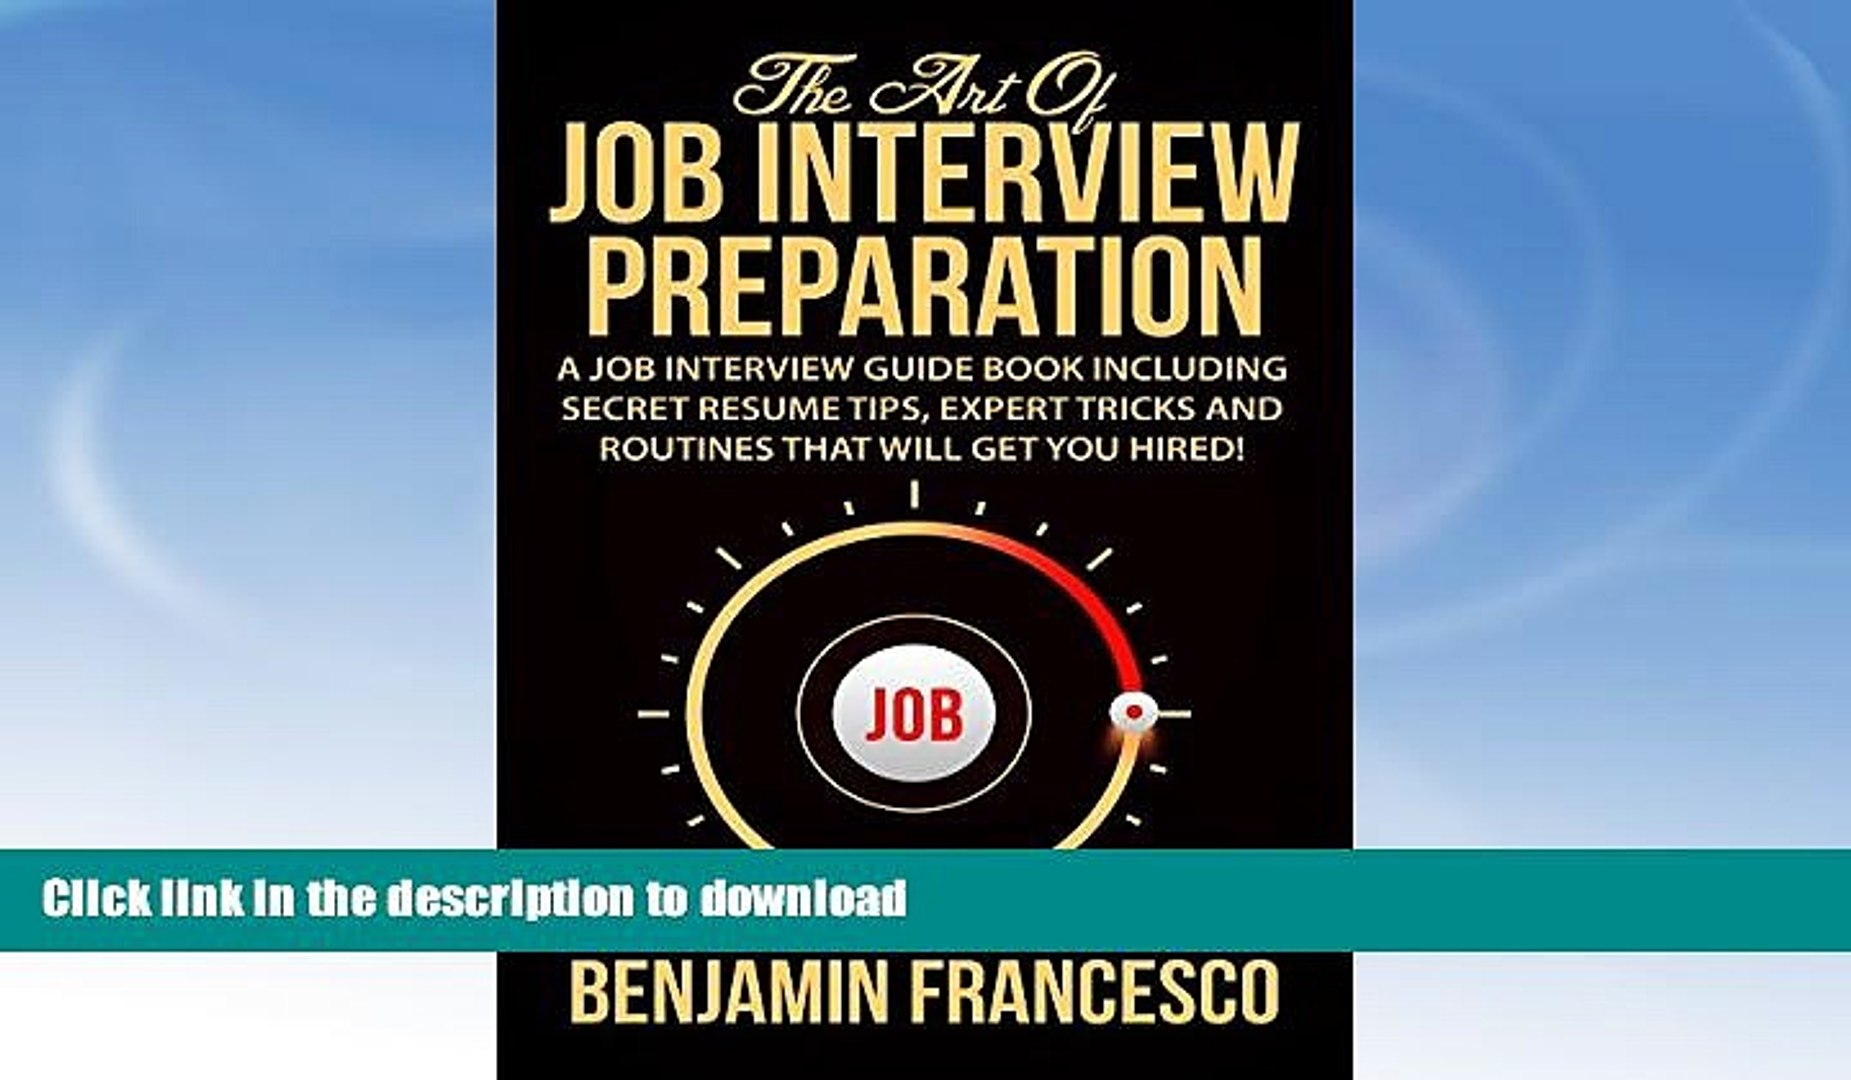 READ BOOK  The Art of Job Interview Preparation: A Job Interview Guide Book Including Secret